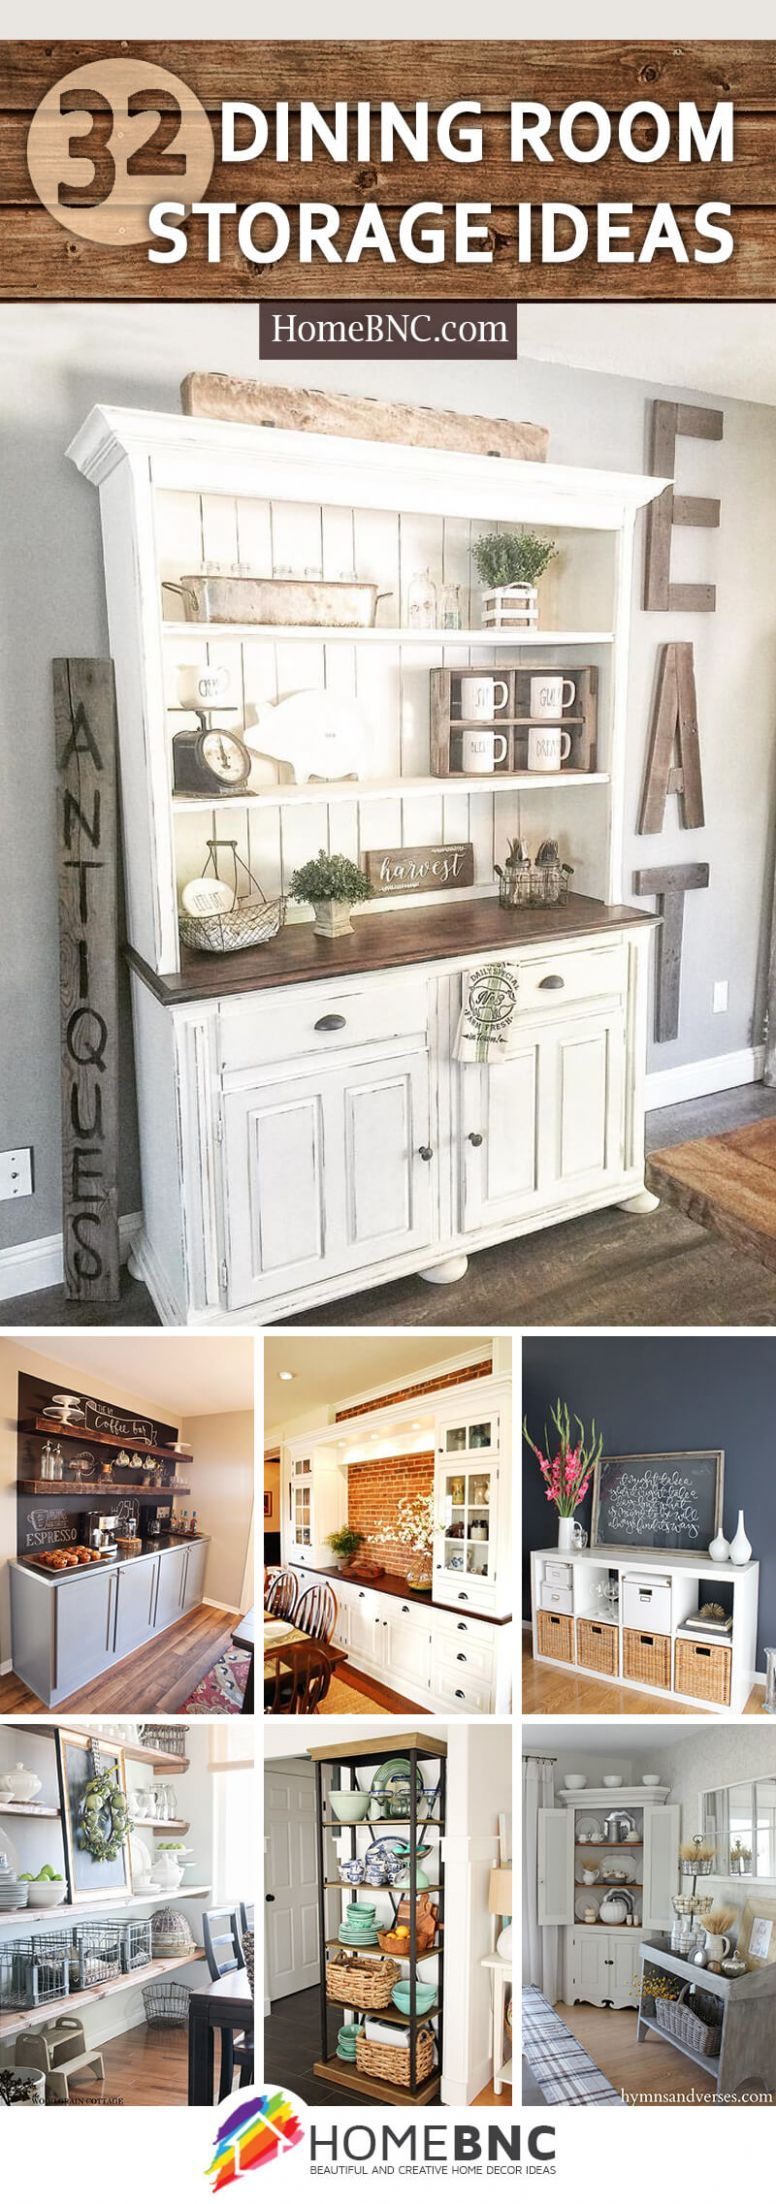 8 Best Dining Room Storage Ideas and Designs for 8 - dining room unit ideas